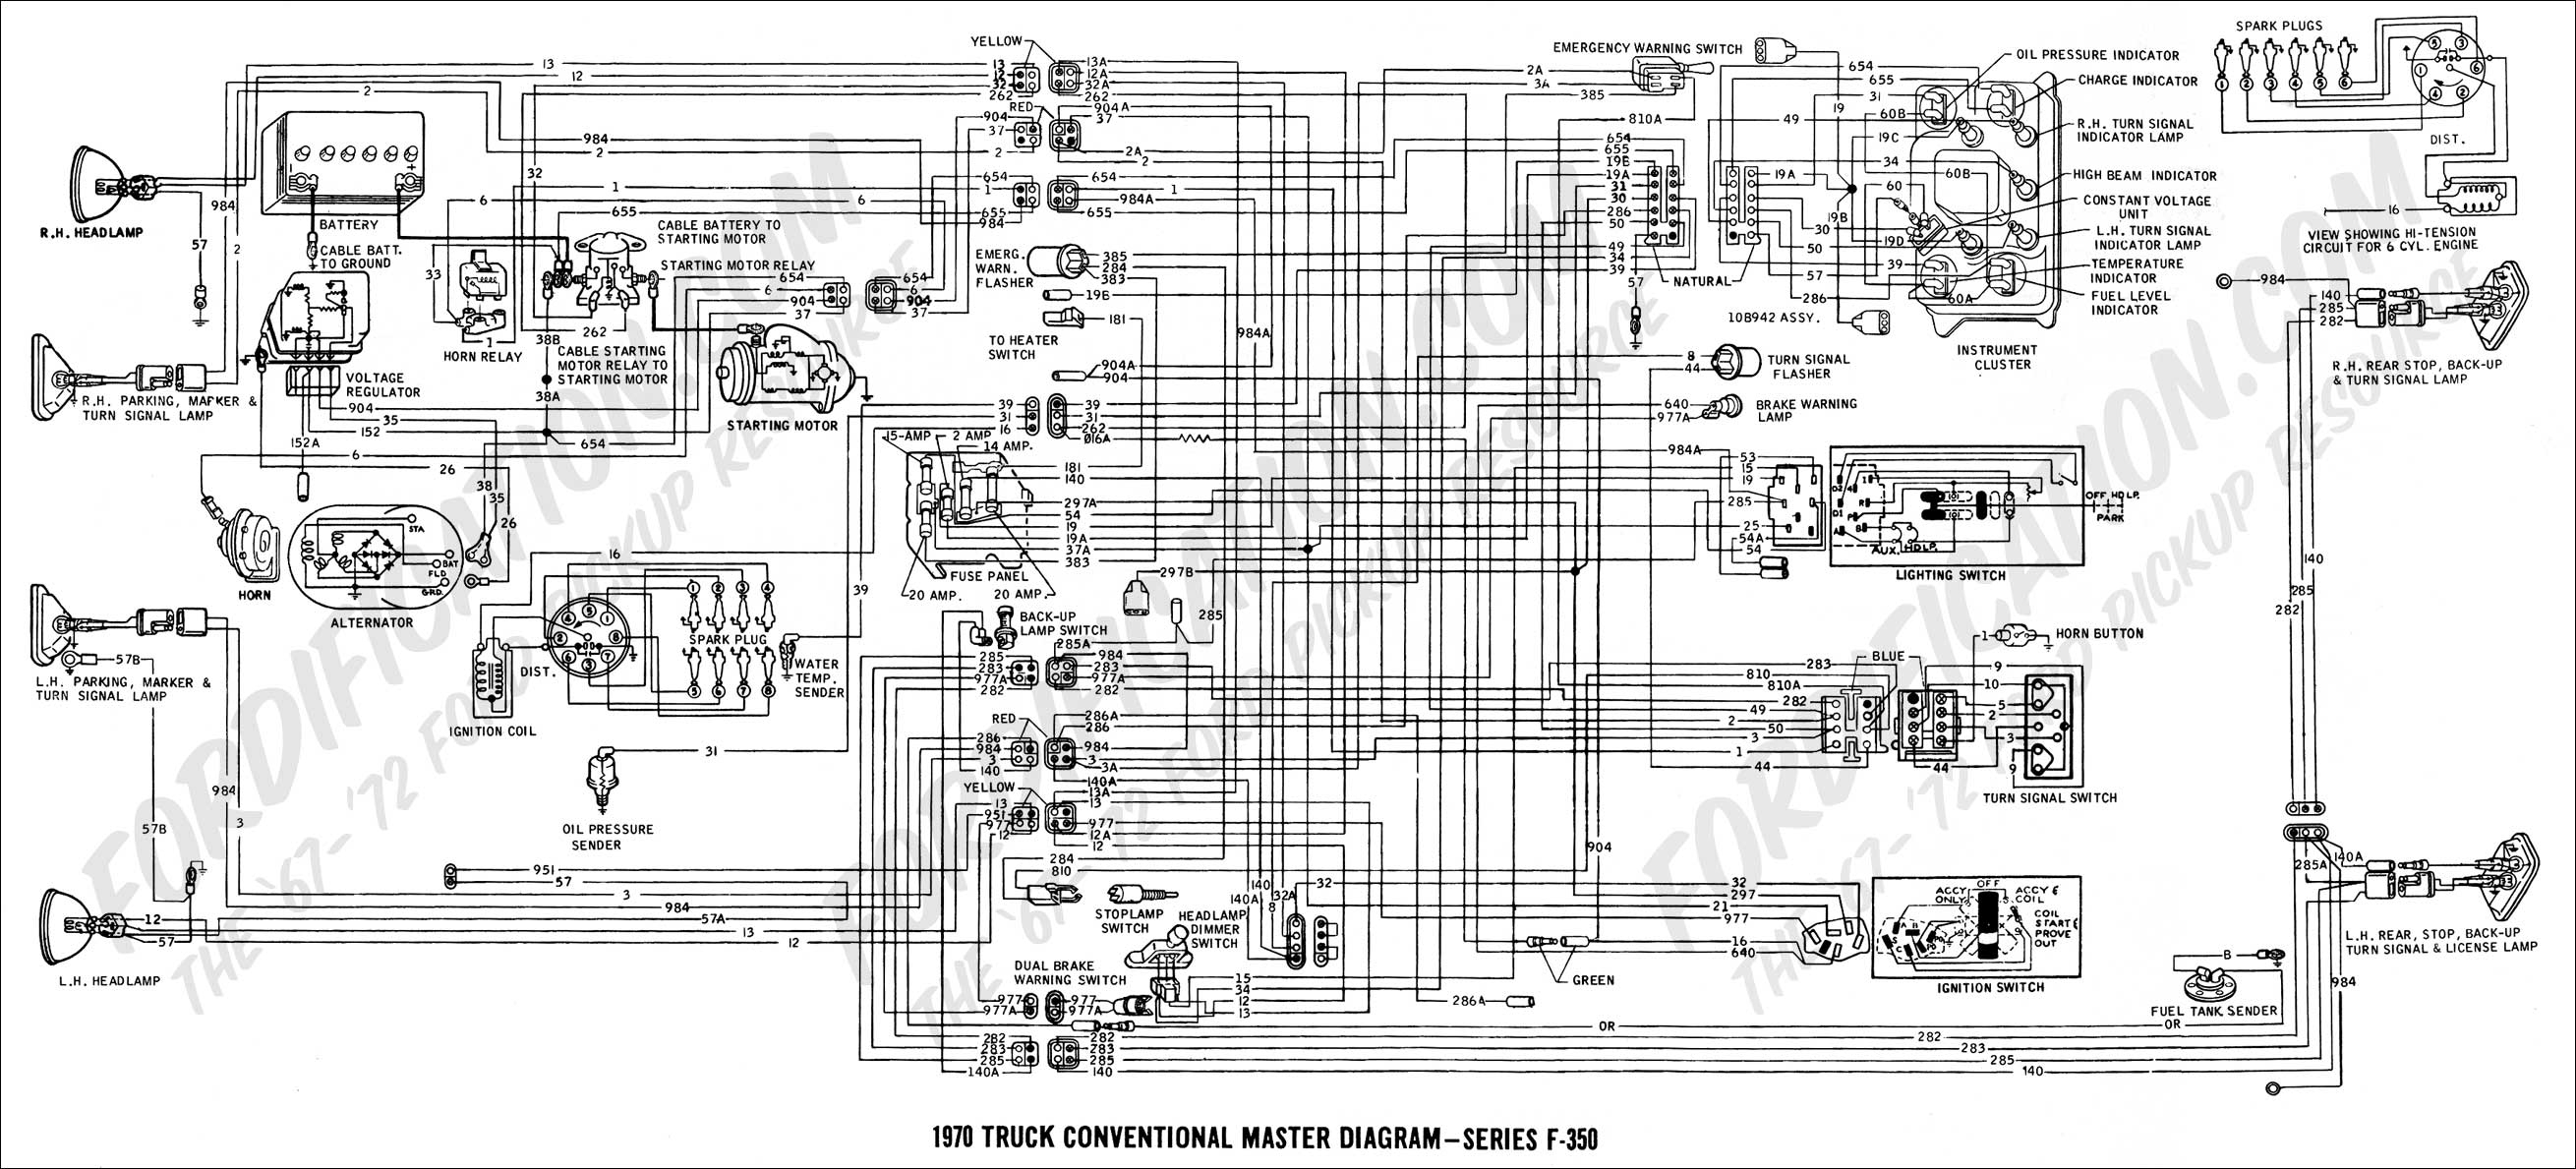 2008 Ford F 250 Wiring Schematic - Wiring Diagrams Thumbs - 97 F250 Trailer Wiring Diagram